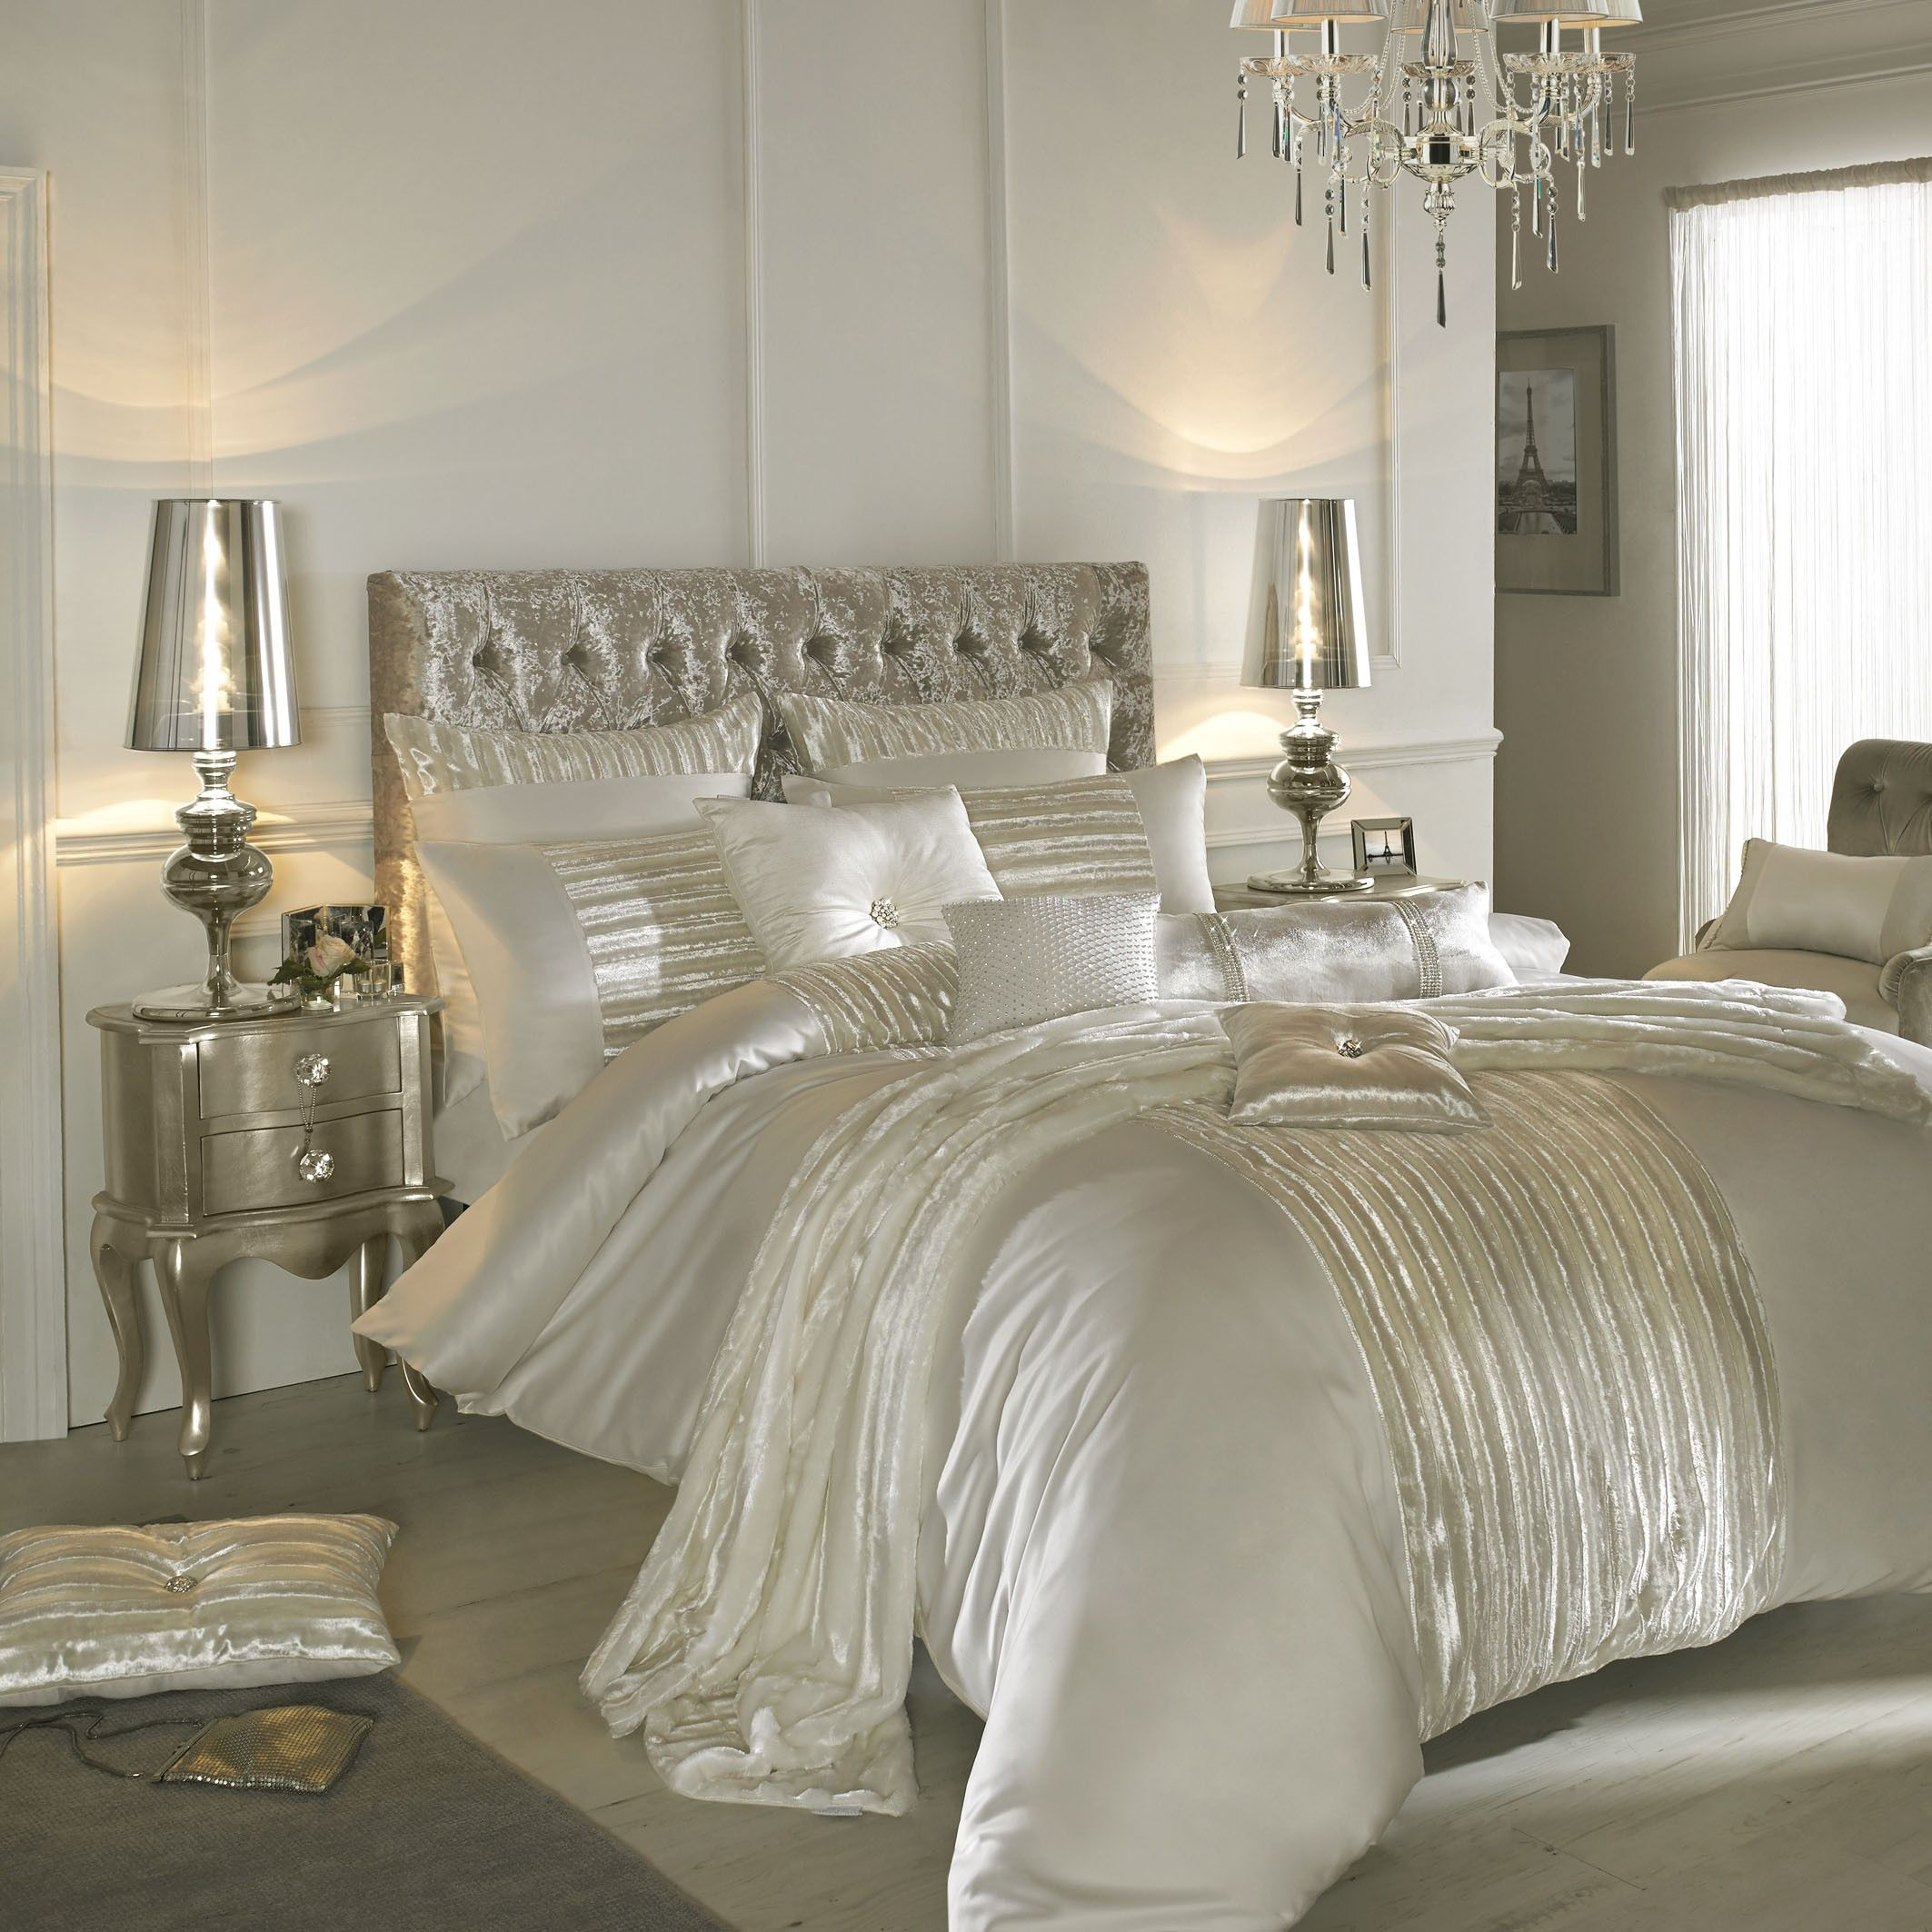 Kylie Minogue At Home Lucette Oyster Bedding I Want This